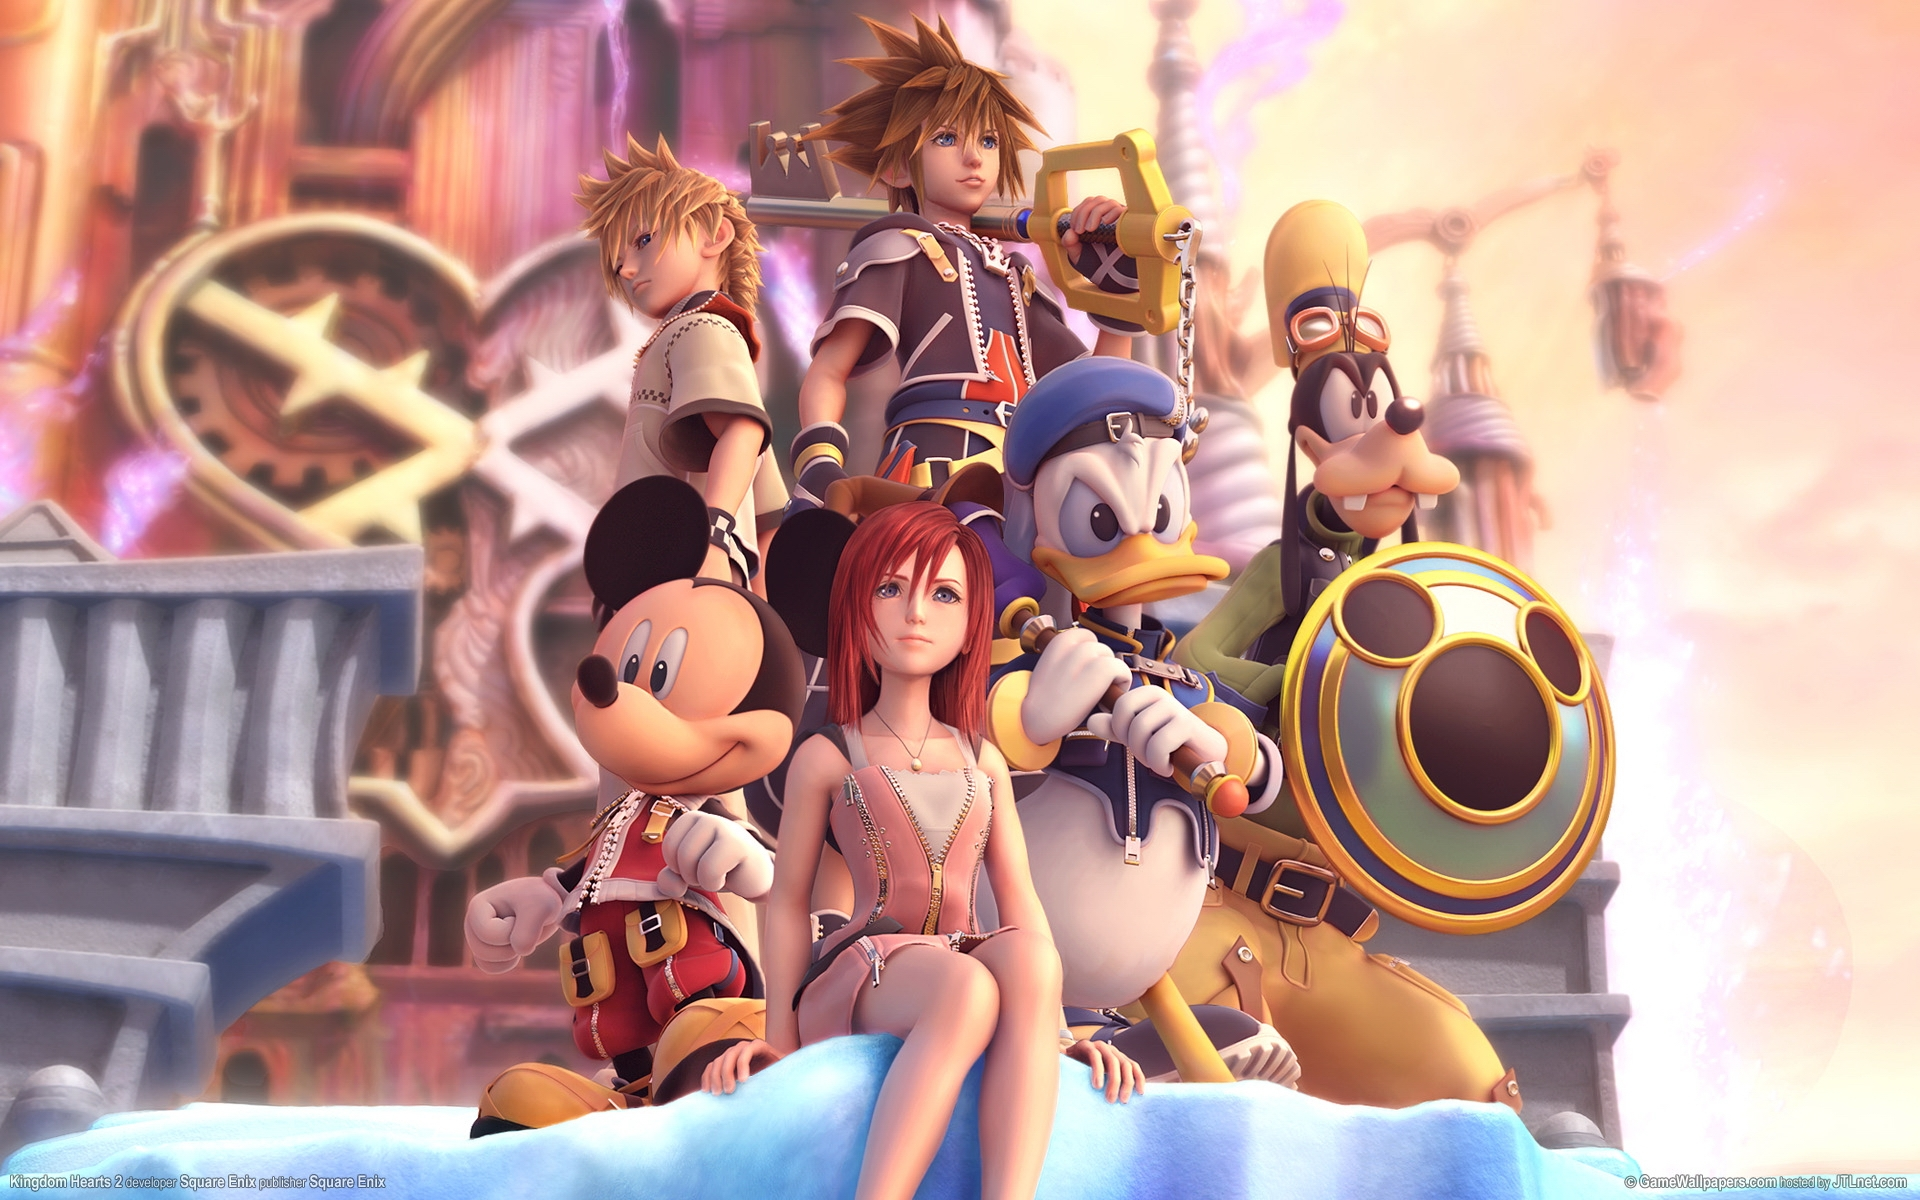 Fond D Ecran Heros De Jeux Video Kingdom Hearts 1296473 Hd Wallpaper Backgrounds Download